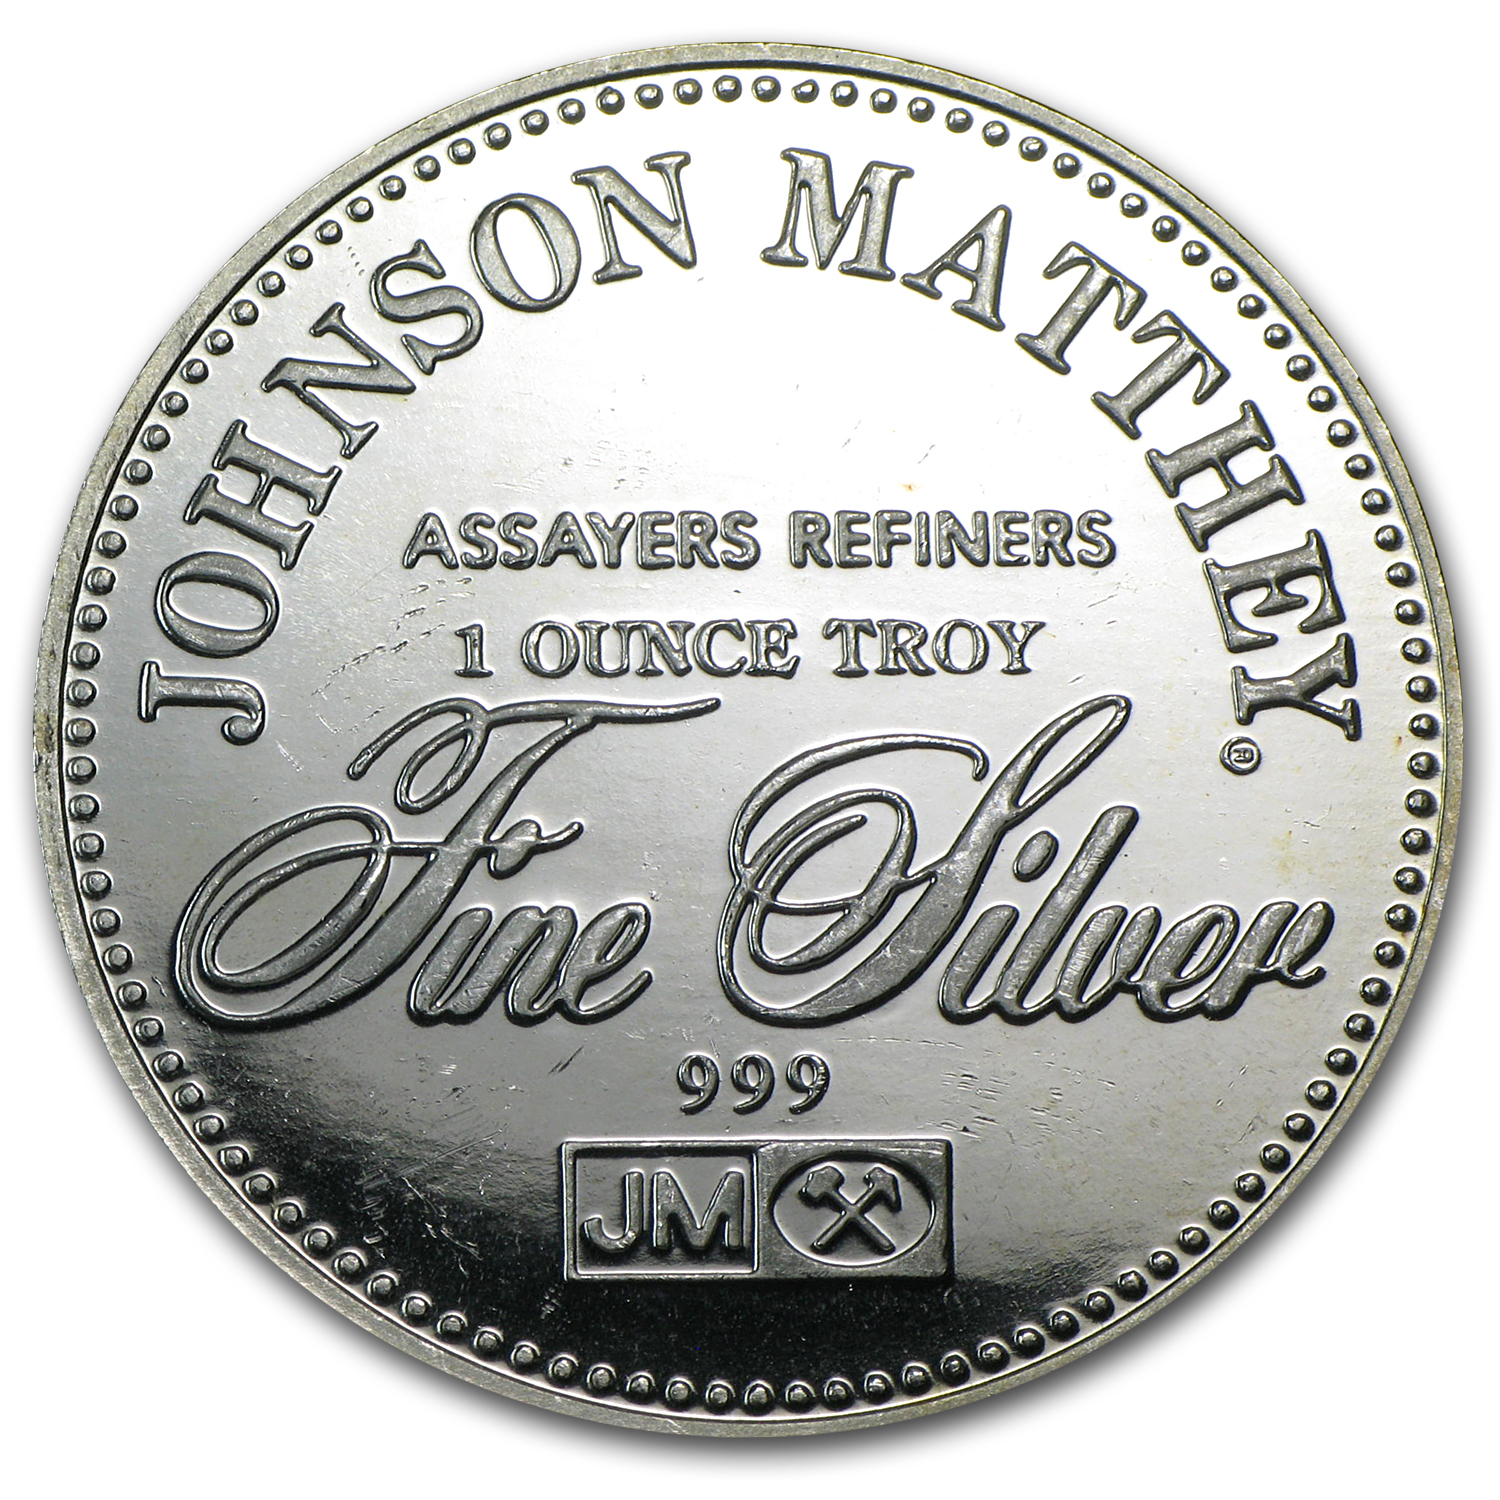 1 oz Silver Rounds - Johnson Matthey (Right to Privacy)